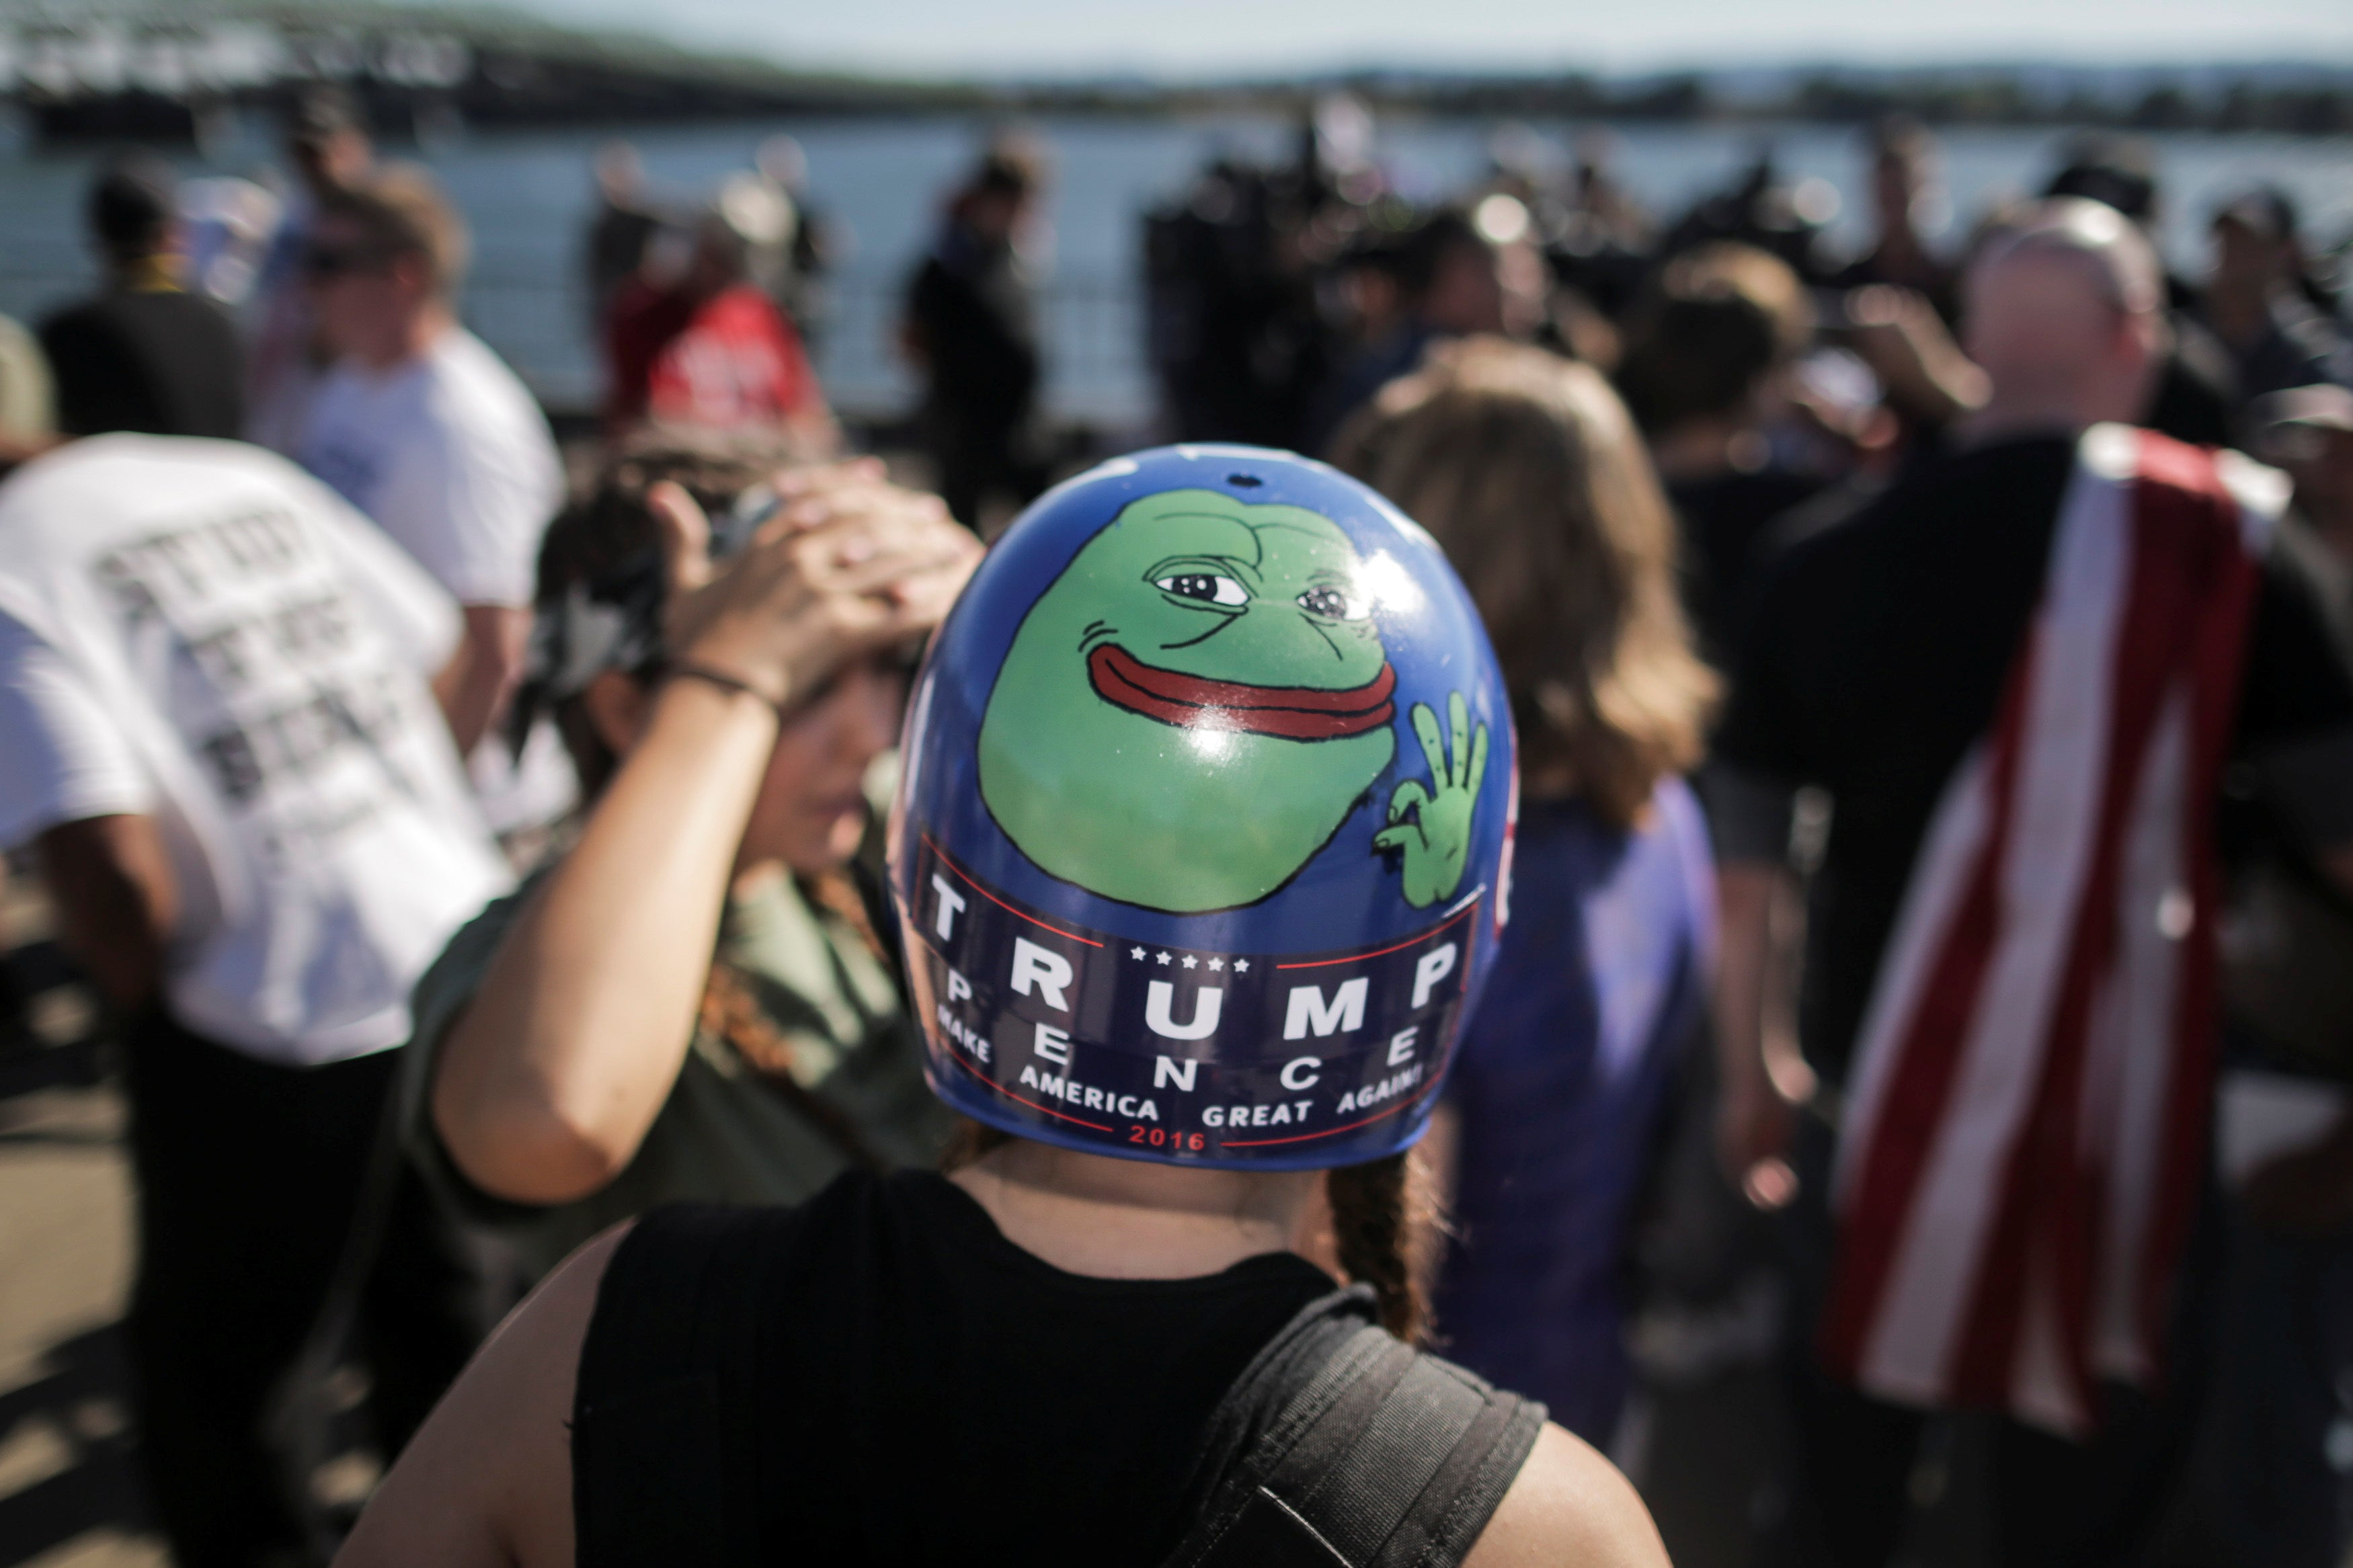 A Trump supporter wears a helmet with a hand-painted Pepe the Frog image.